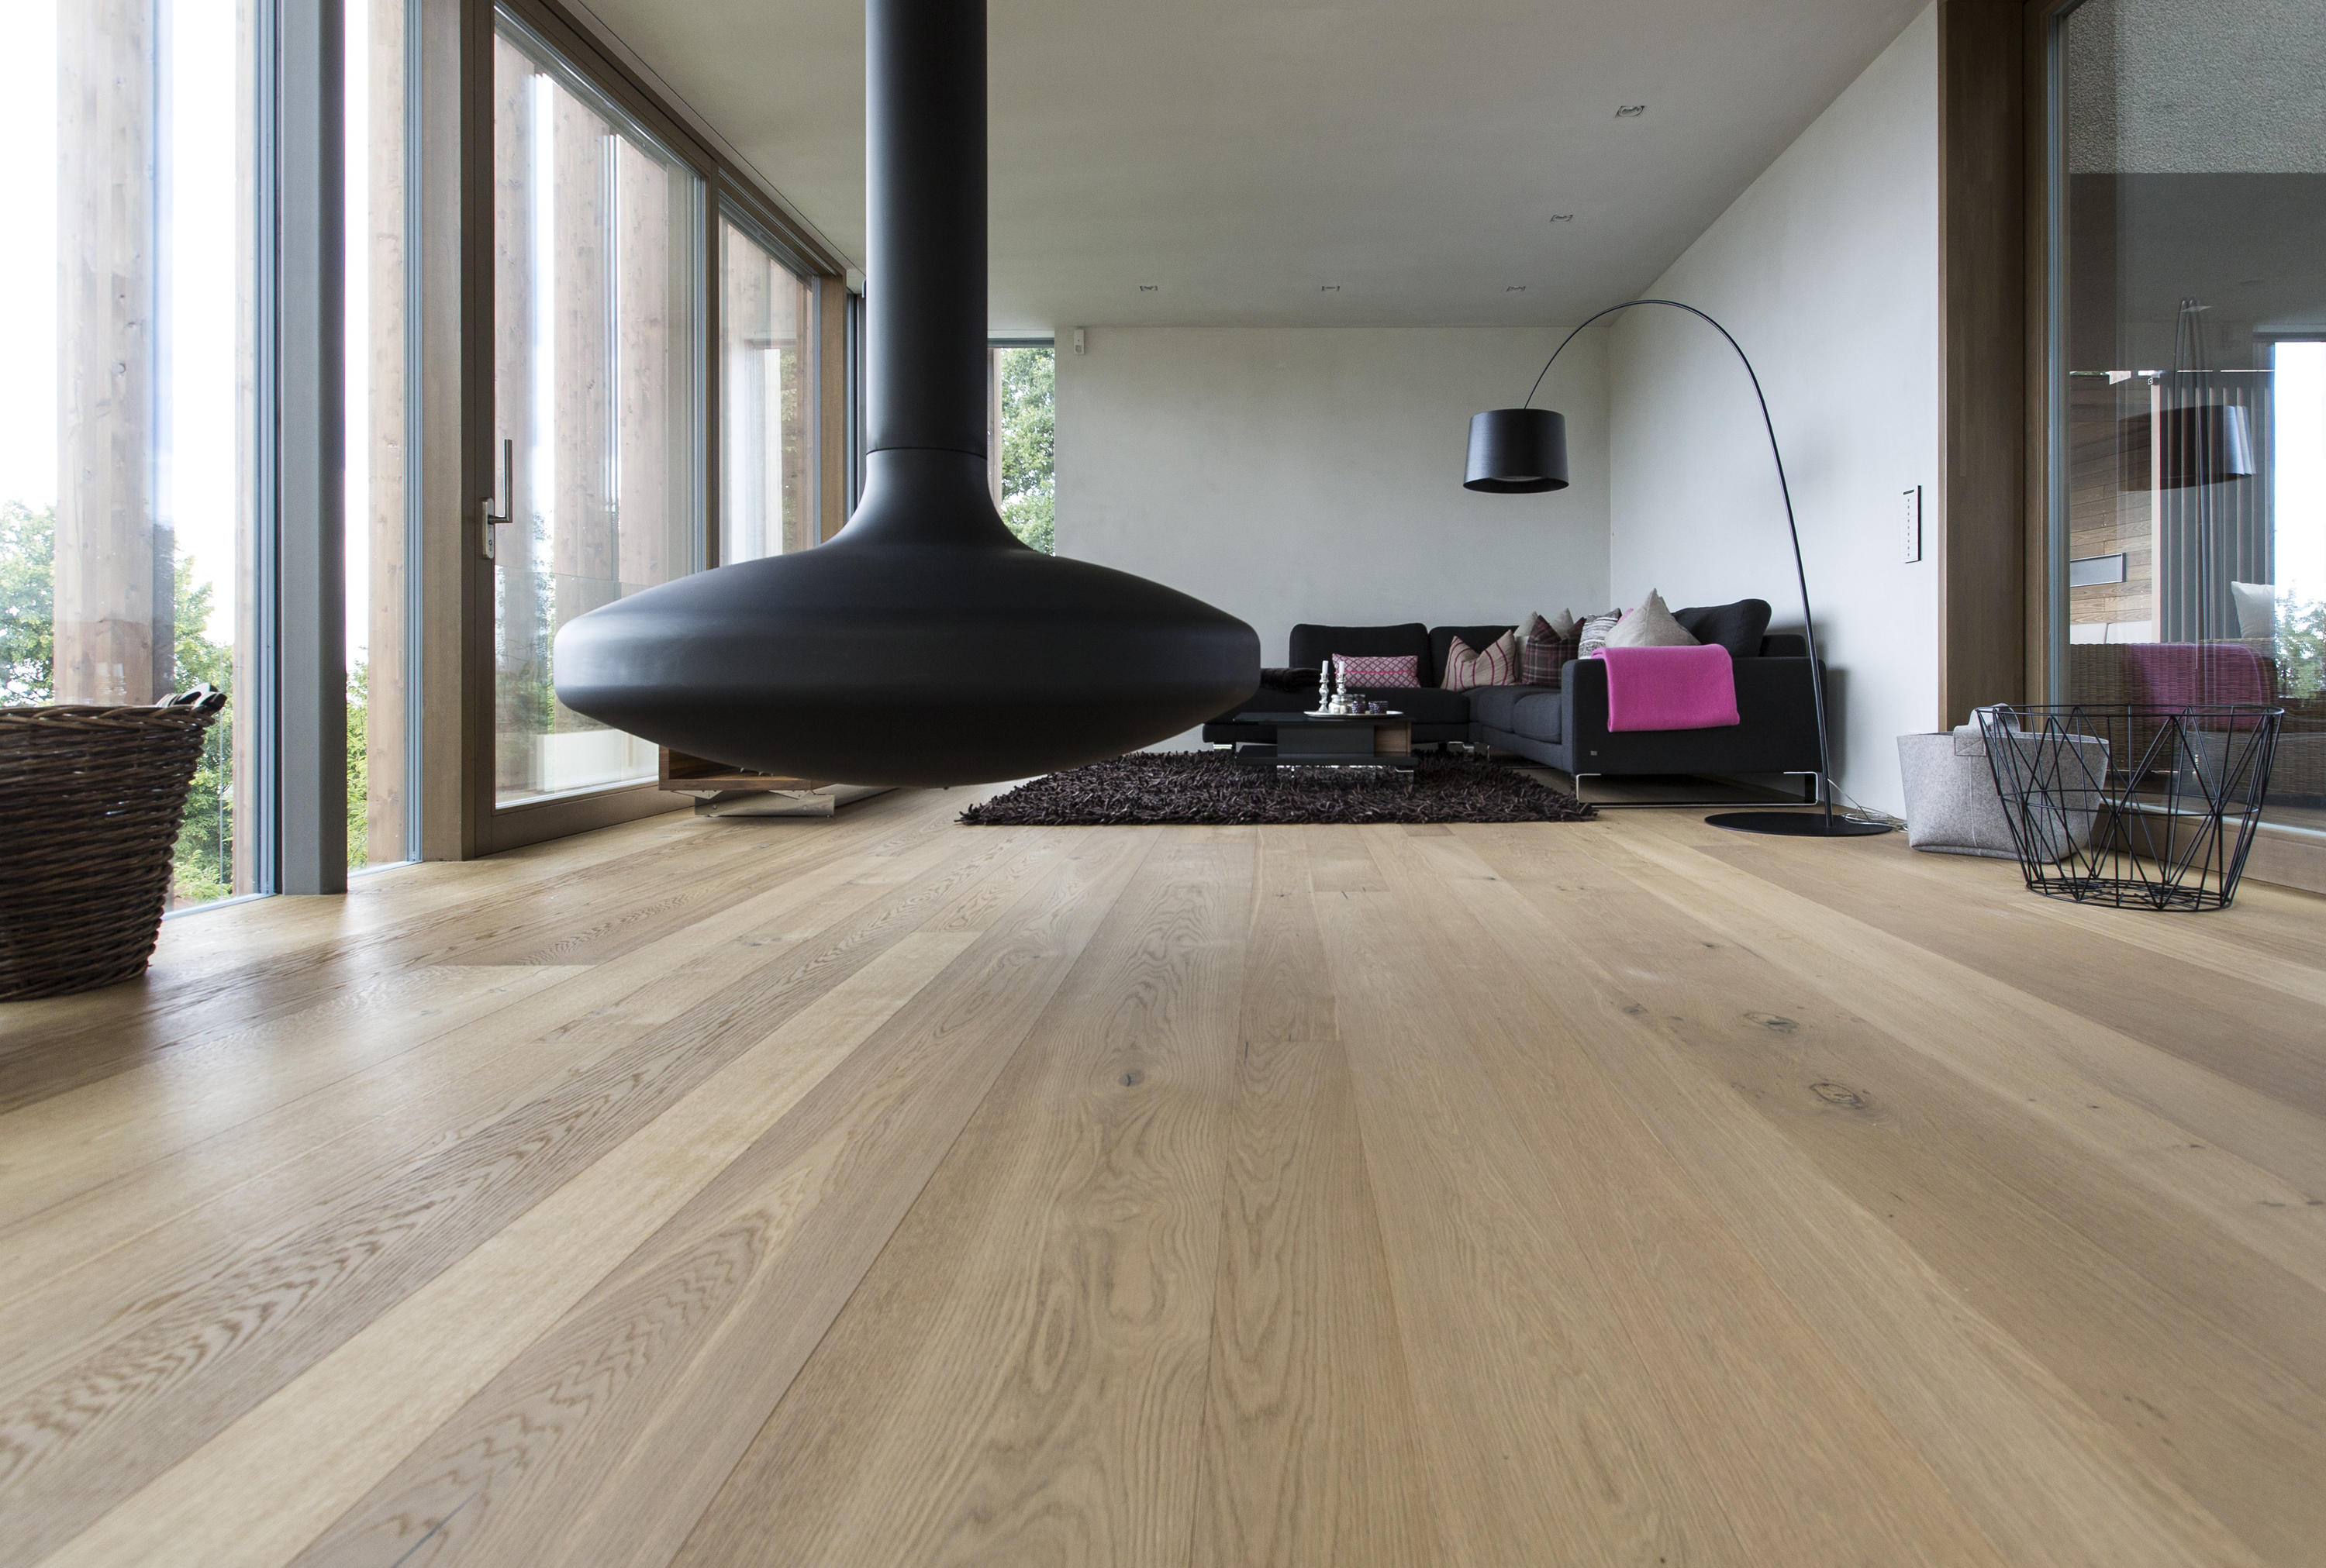 Objekt Floor floors hardwood oak aurum wood flooring from admonter